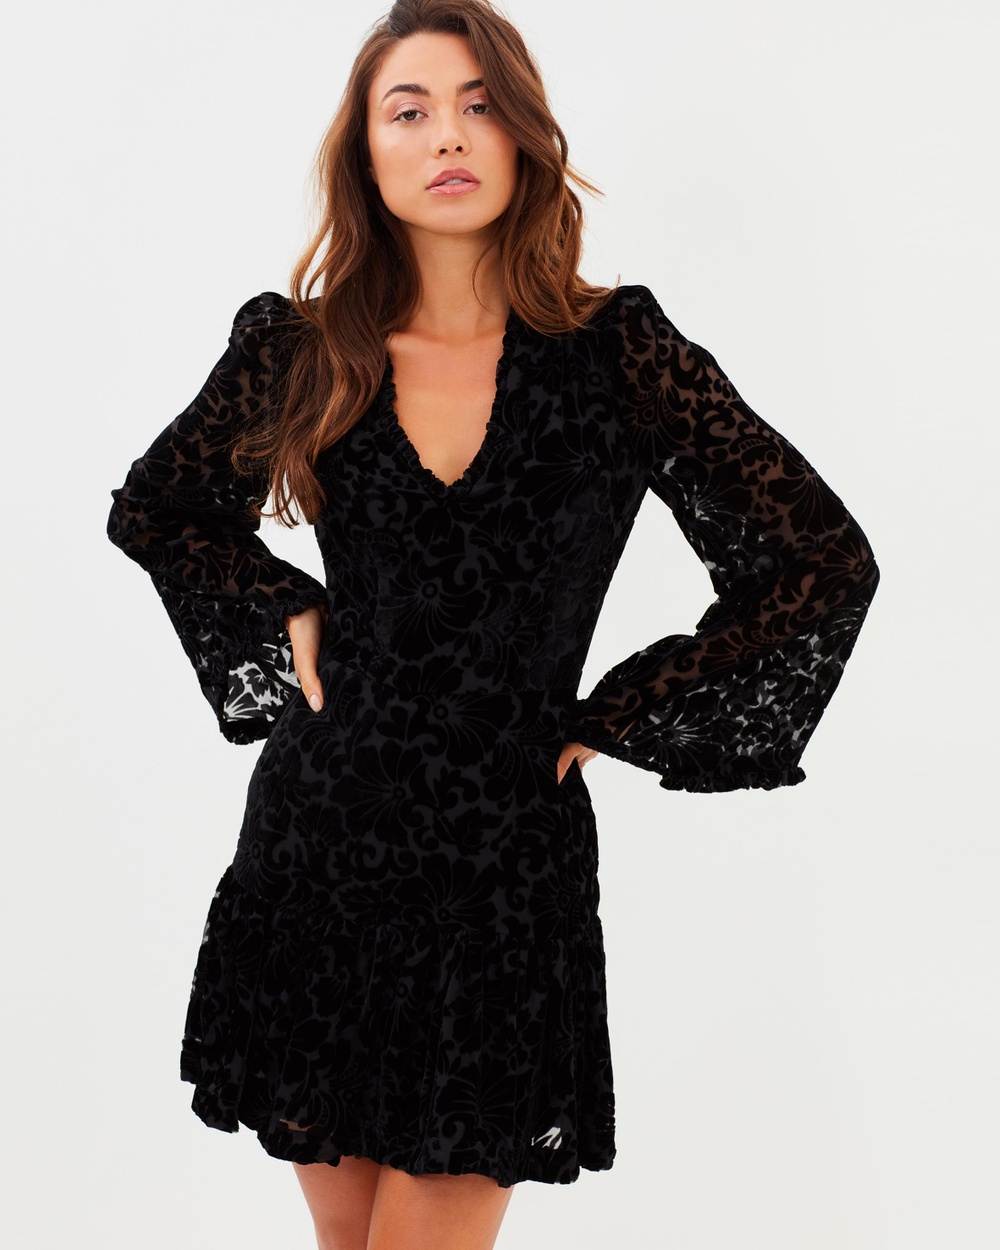 Cooper St Venice Long Sleeve Mini Dress Dresses Black Venice Long Sleeve Mini Dress